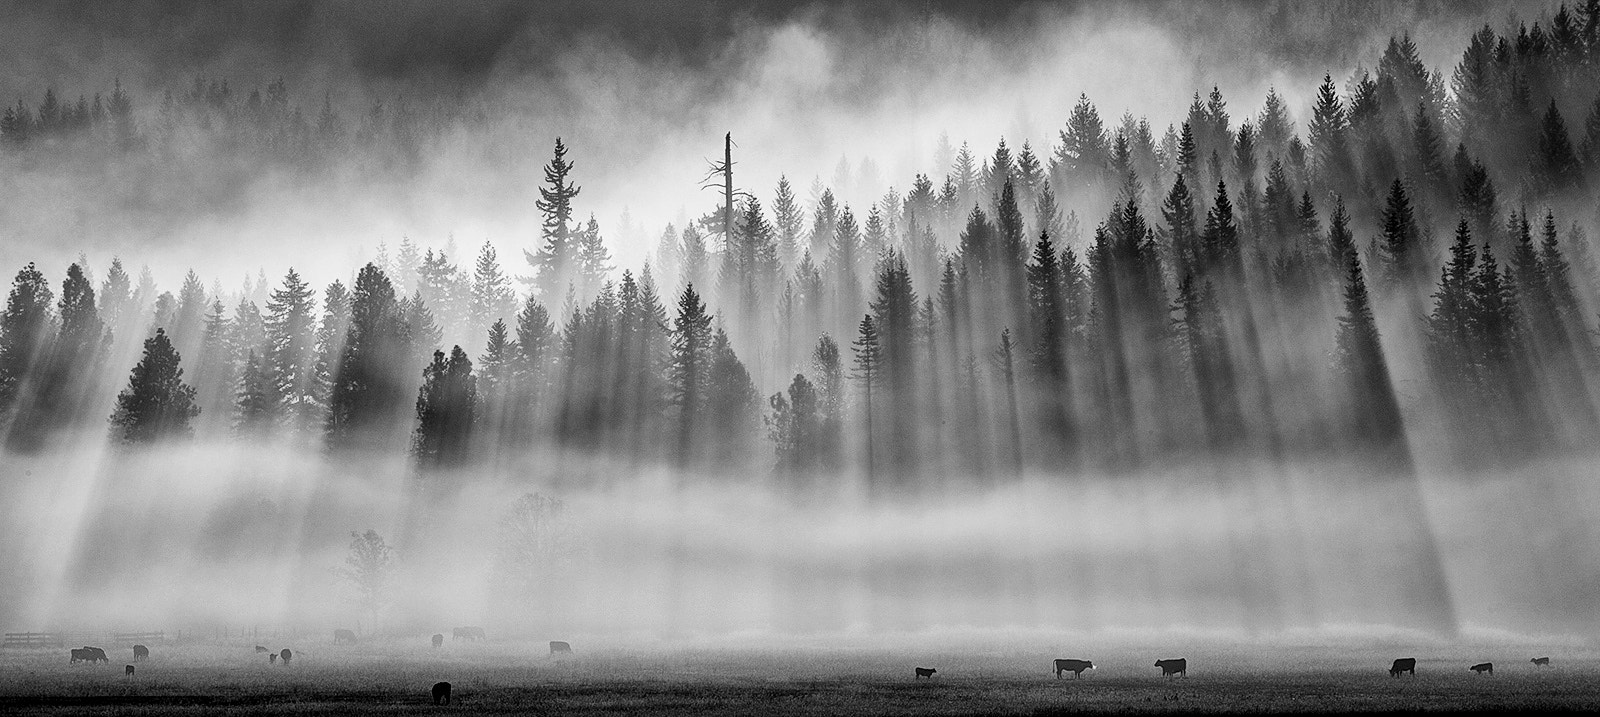 Photograph Roaming in the mist... by Jesse Estes on 500px